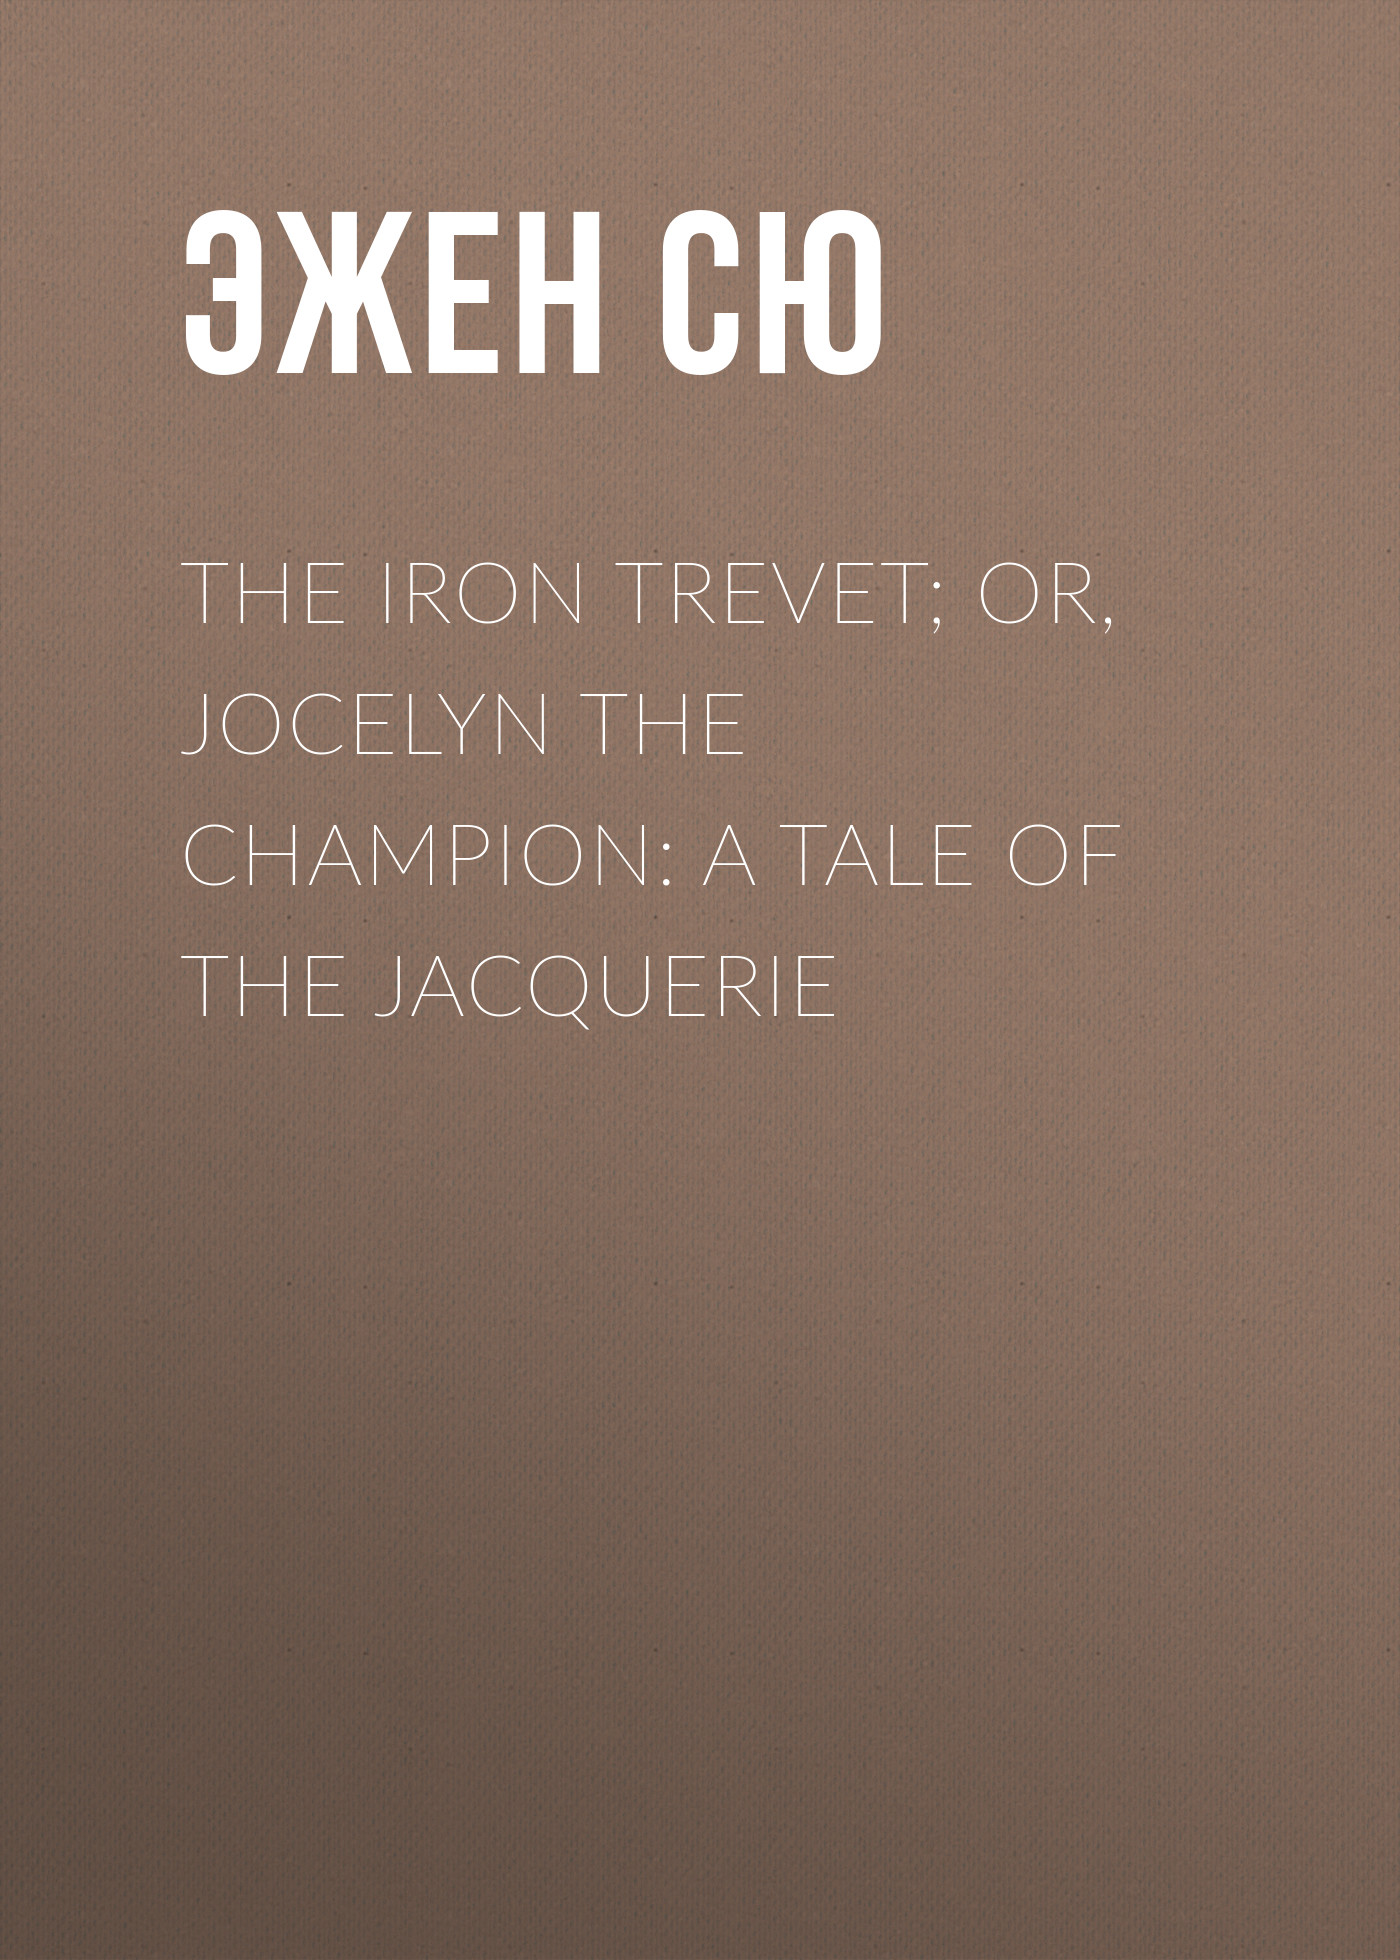 Фото - Эжен Сю The Iron Trevet; or, Jocelyn the Champion: A Tale of the Jacquerie эжен сю the gold sickle or hena the virgin of the isle of sen a tale of druid gaul